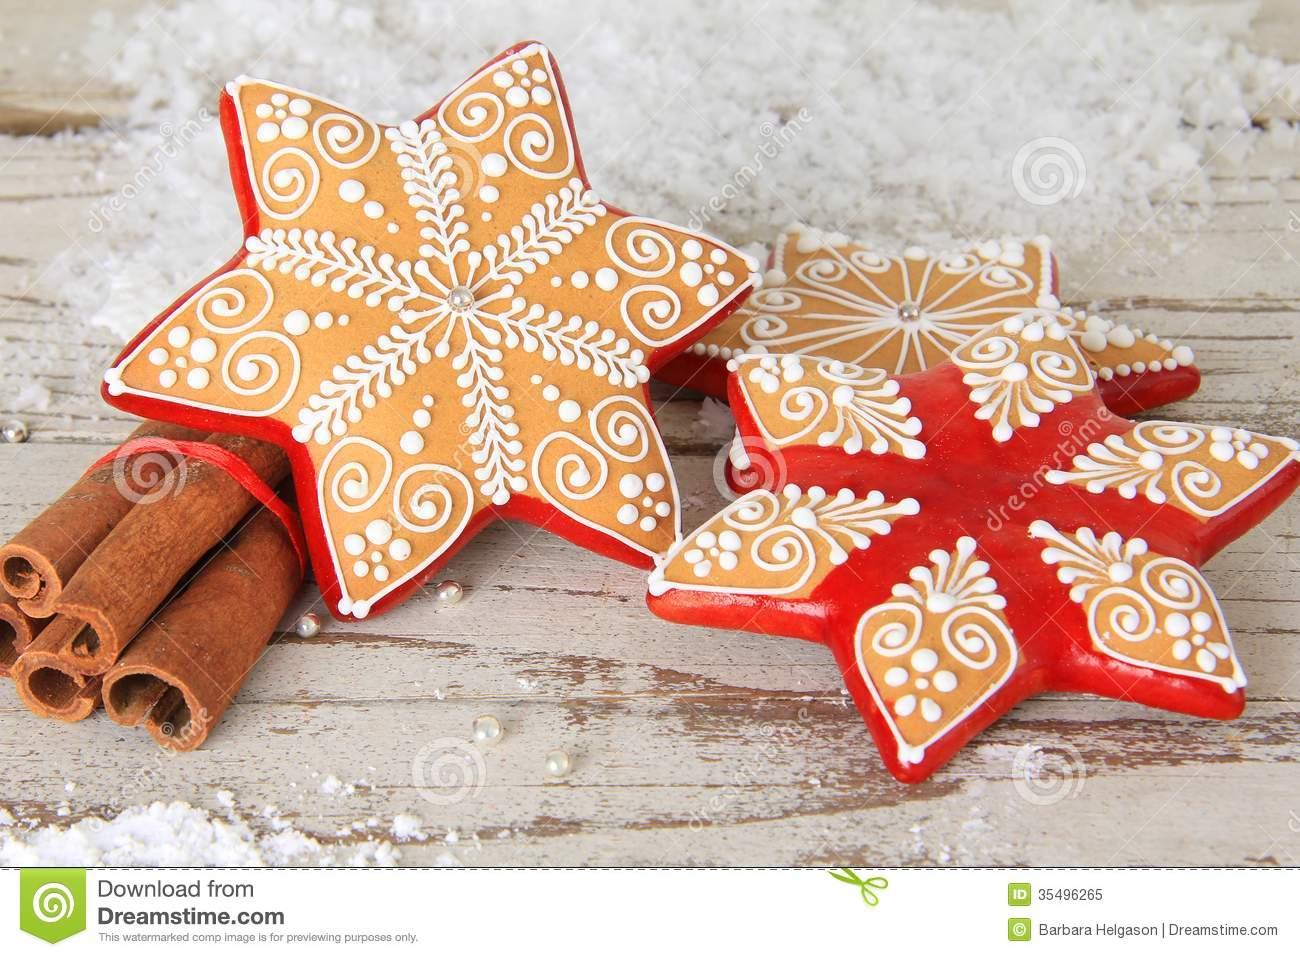 Christmas Sugar Cookies Christmas gingerbread cookie